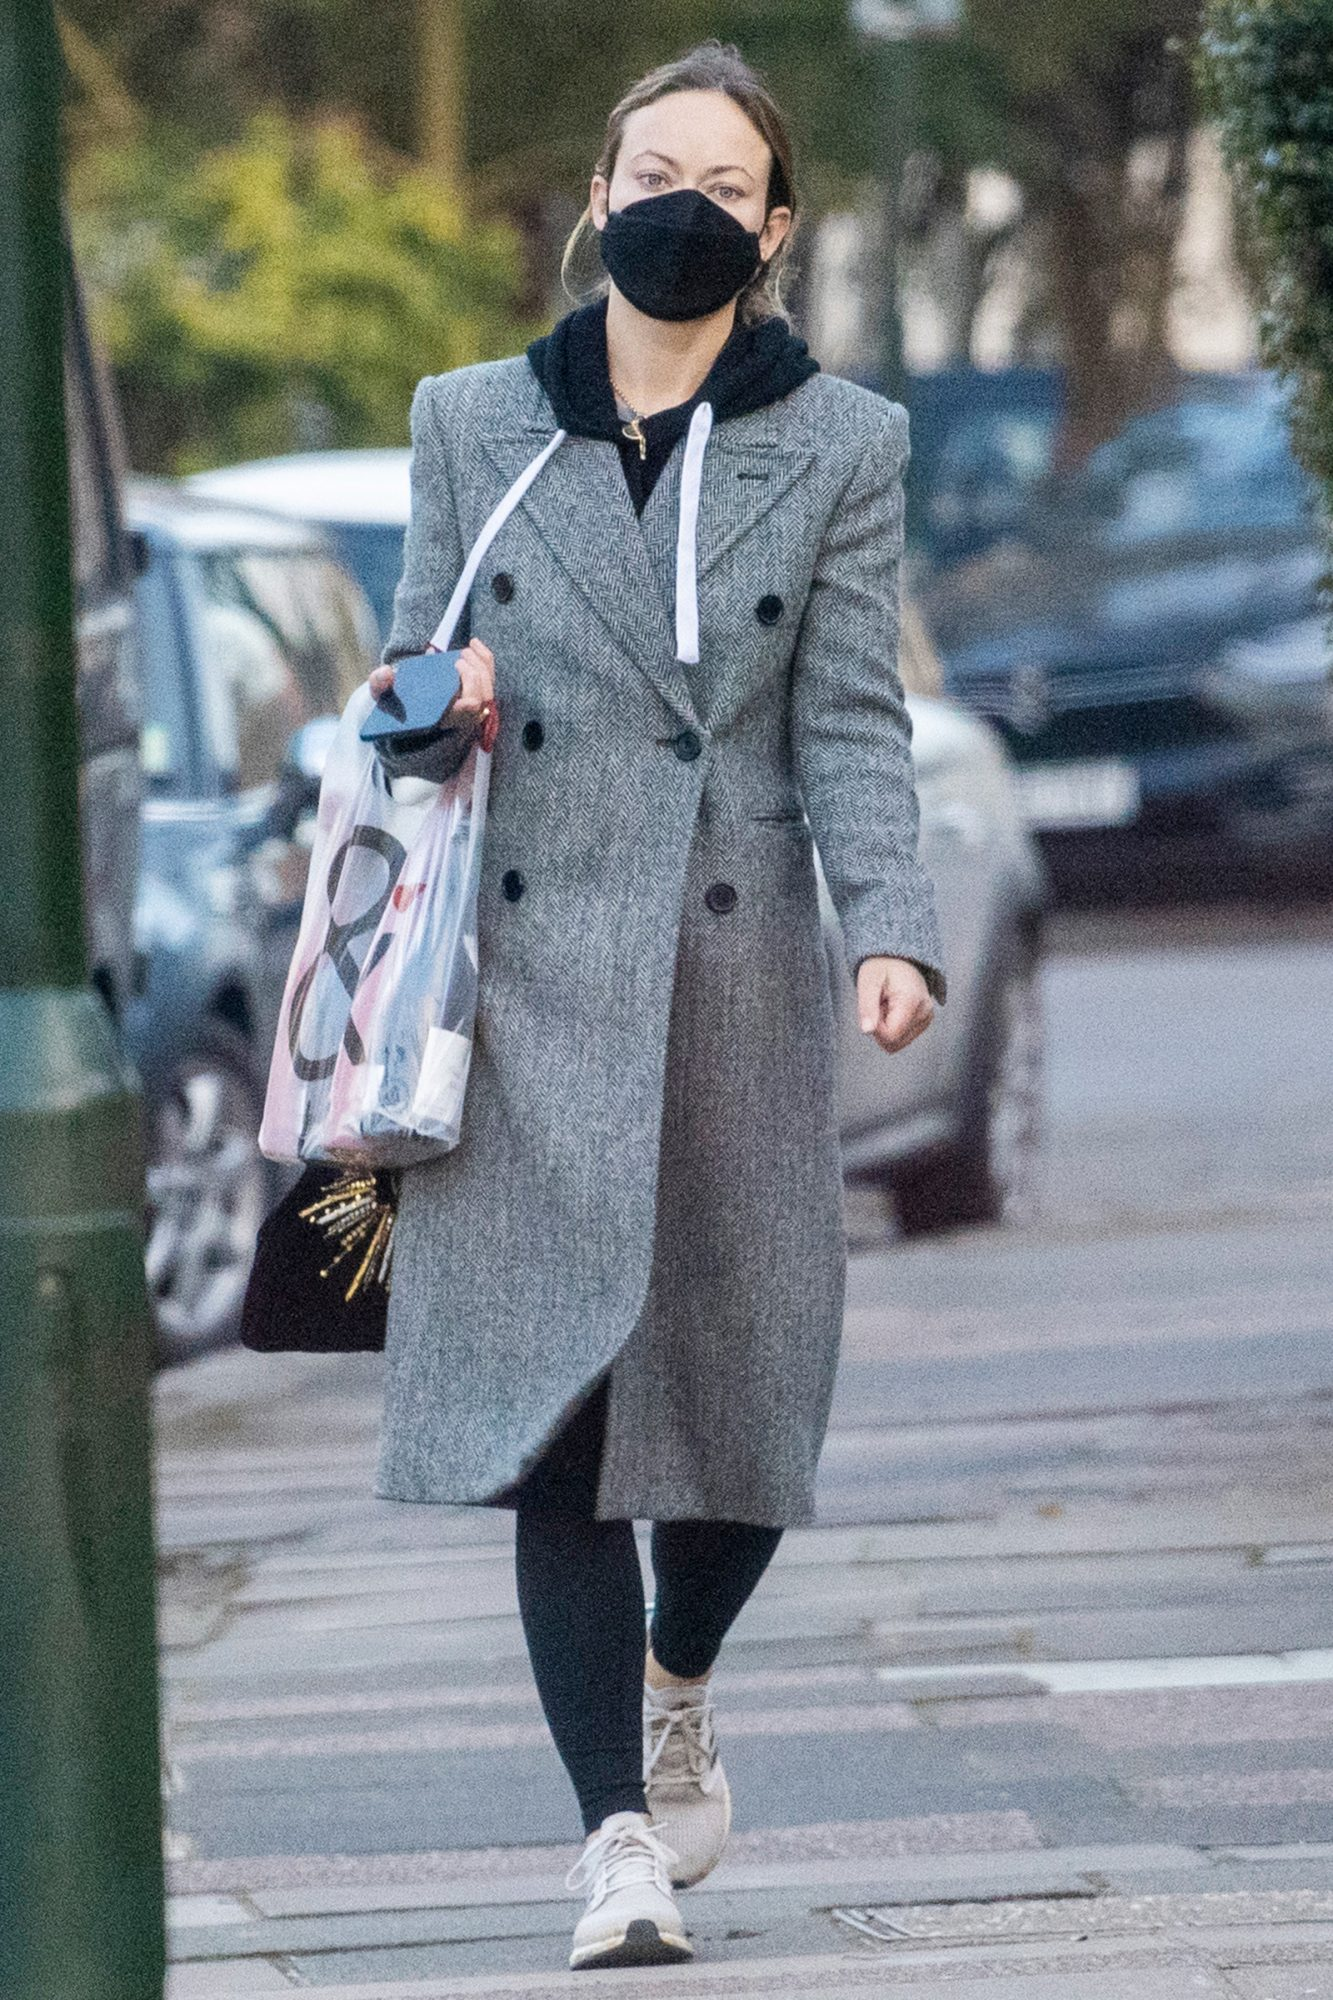 Olivia Wilde is Spotted on a Trip to Pick Up Some Wine in London